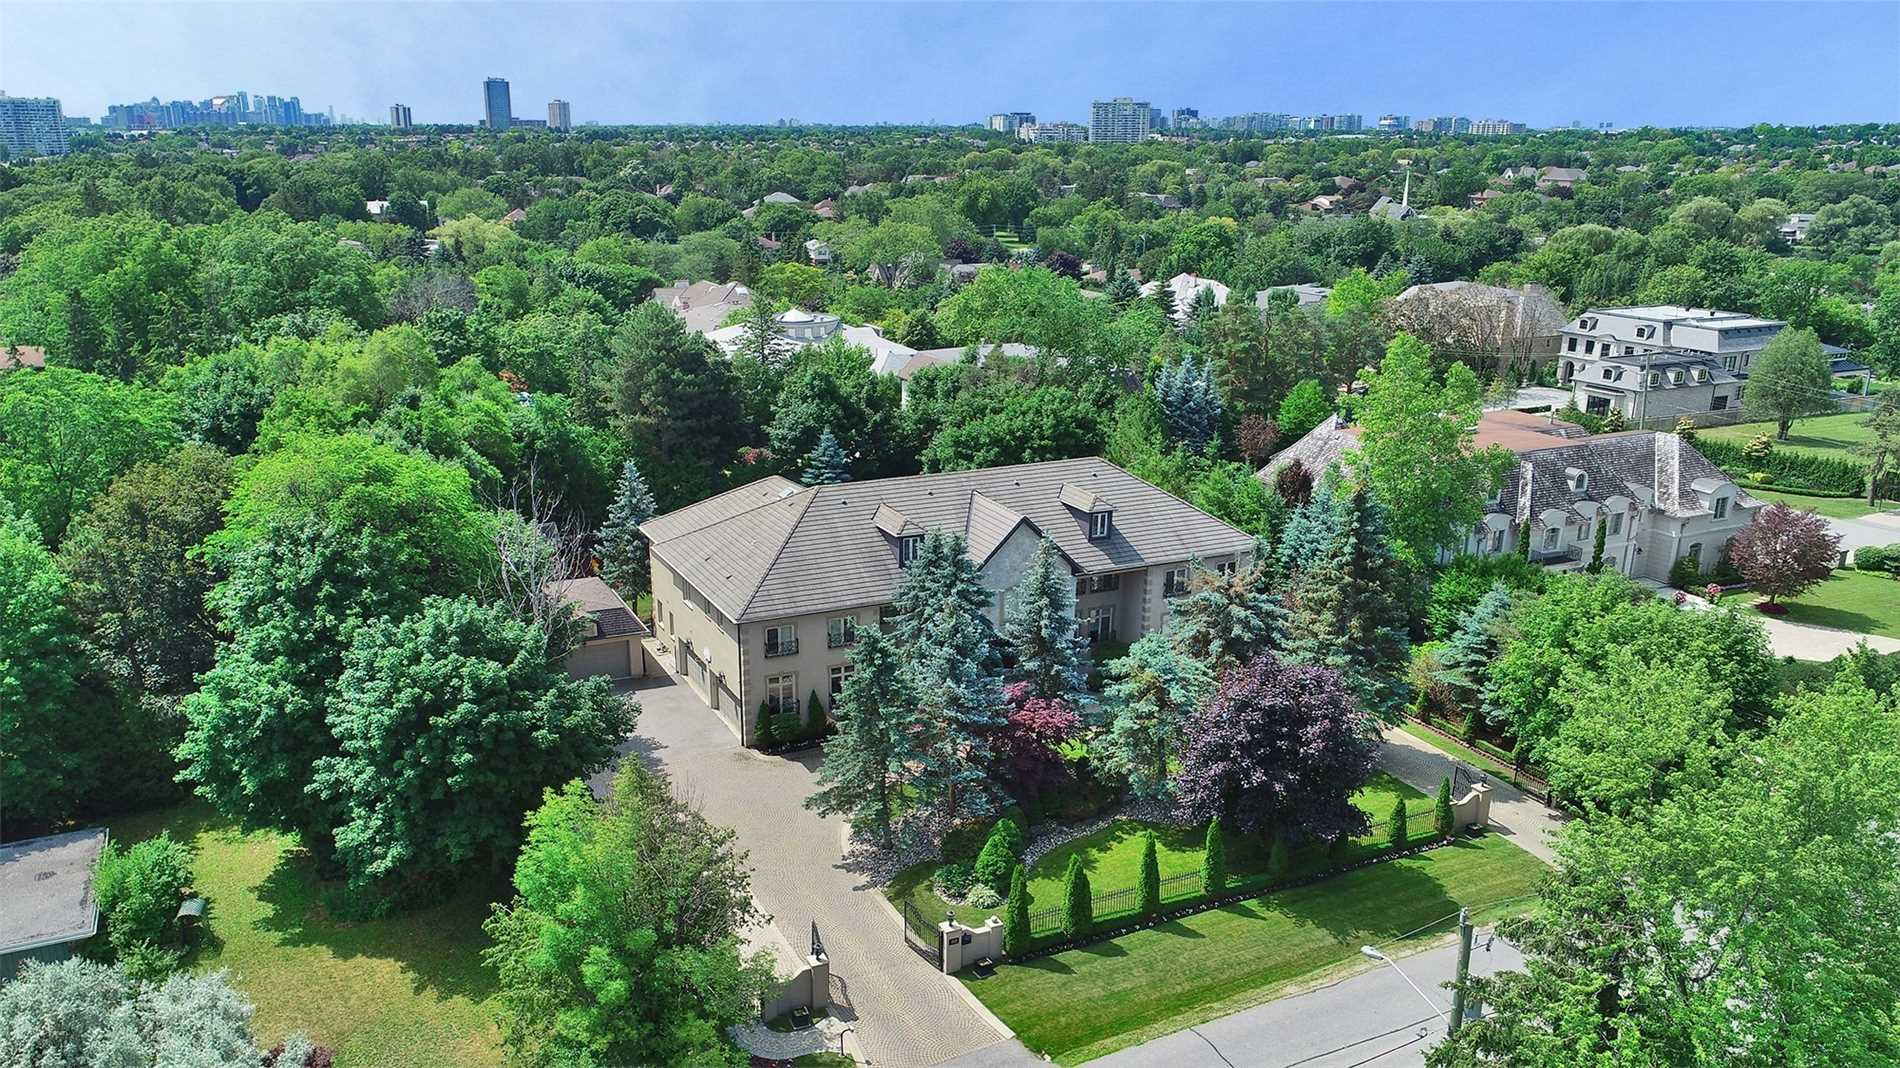 Spectacular 150 Ft Wide Lot With 10,000 Sq. Ft. Estate With 6 Car Garage In One Of Thornhill's Most Prestigious Neighbourhoods! ~ Mezzanine O/Looking Grand Foyer, *** Elevator*** , Enormous Master W/ Sitting Room, W/O To Terrace Overlooking Swimming Pool & Magnificent Gardens, 2 Walk In Closets, Ensuite & Sauna. This Grand Home Is An Ideal Residence For Entertaining. +5,000 Sq.Ft. Basement Incld Rec.Rm + Bar,Disco + Bdrm.,Den, Home Theatre, + Steam Room